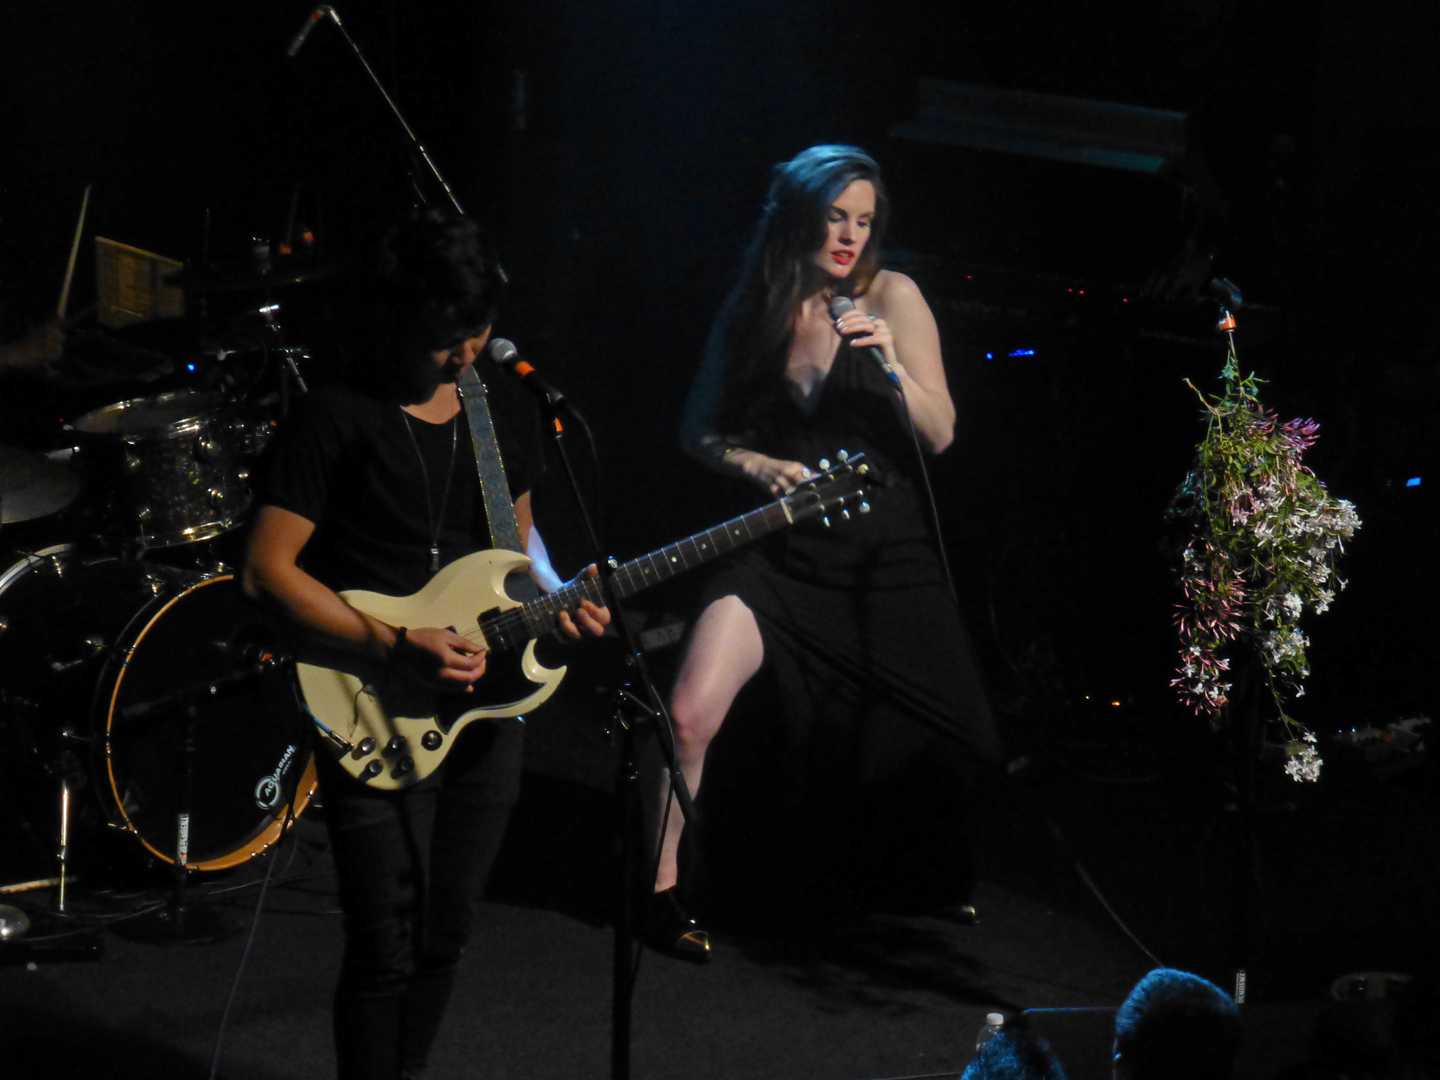 Photos & videos: Noise Pop - Cathedrals, Silver Swans & Waterstrider at the Independent, 2/28/2015